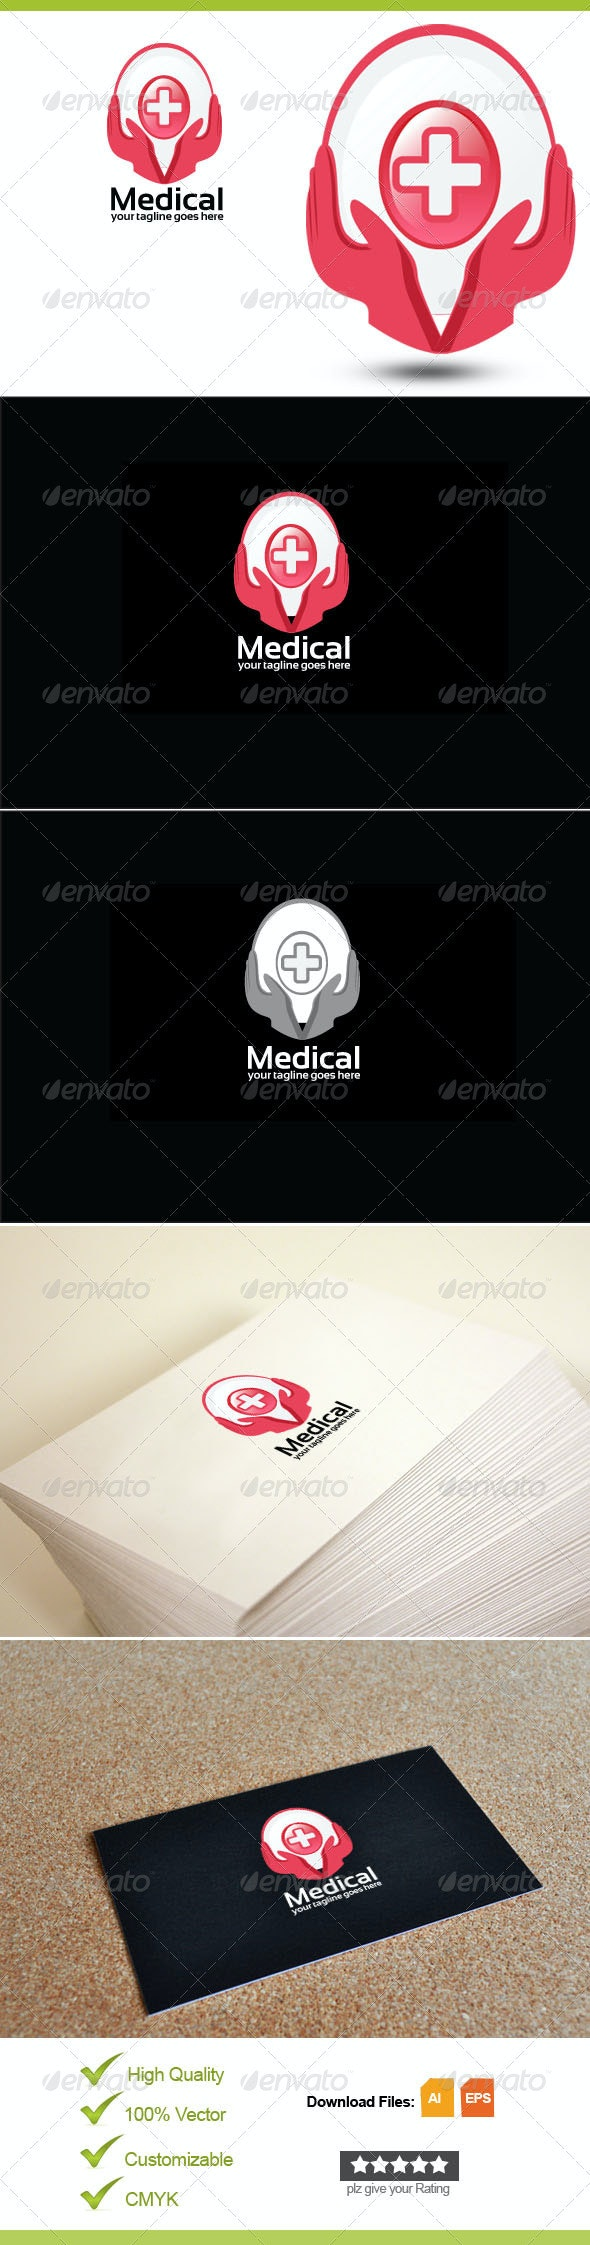 Medical, Health, Care Logo Template - Objects Logo Templates